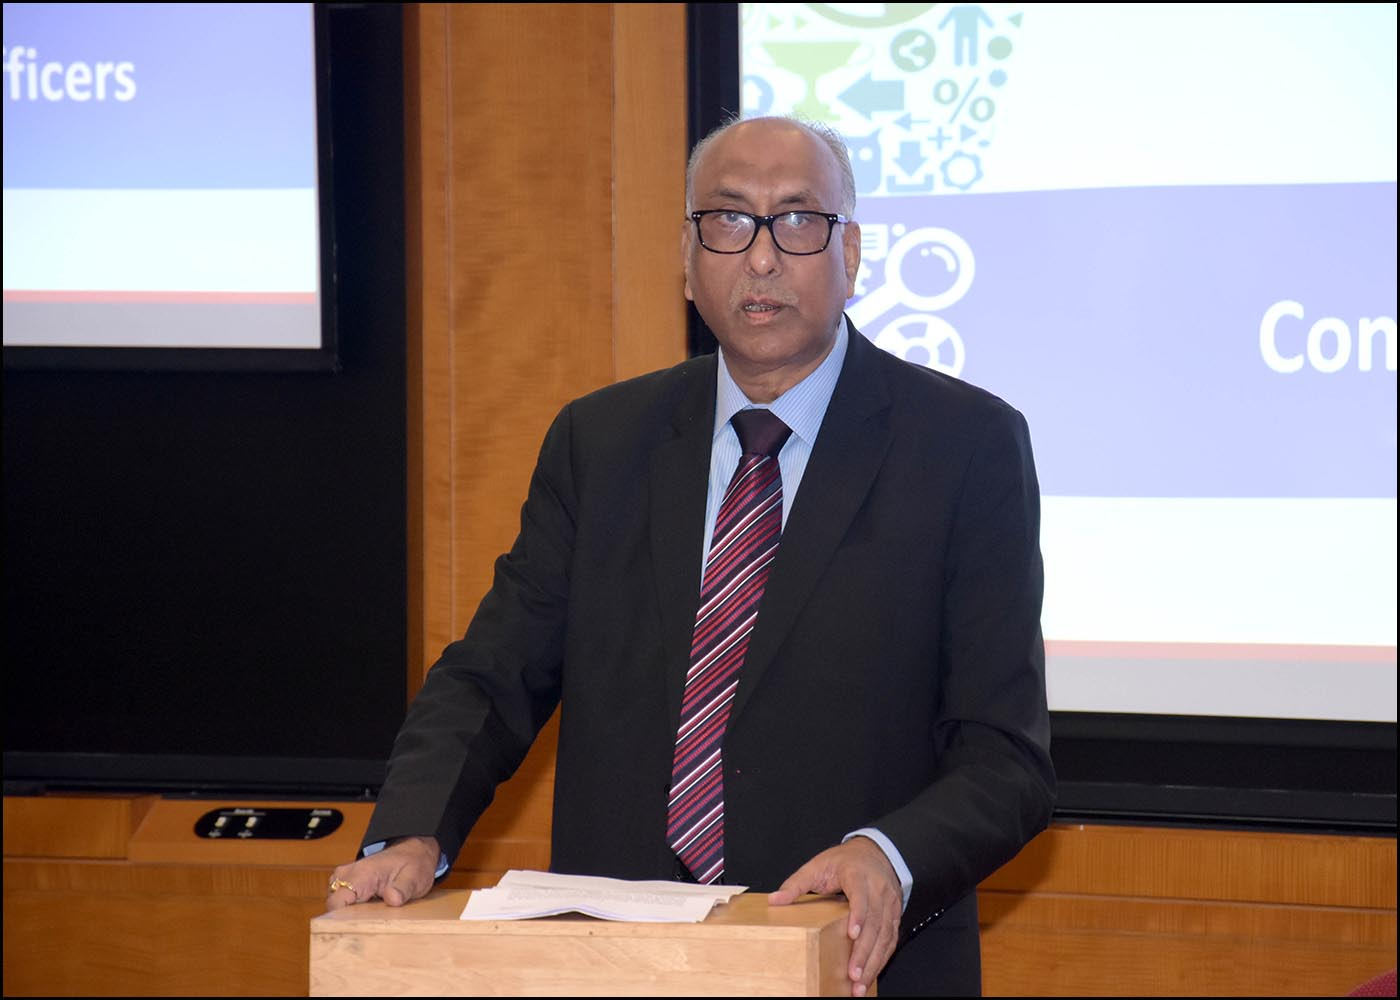 Shri. S. S. Mundra, Ex Deputy Governor, Reserve Bank of India